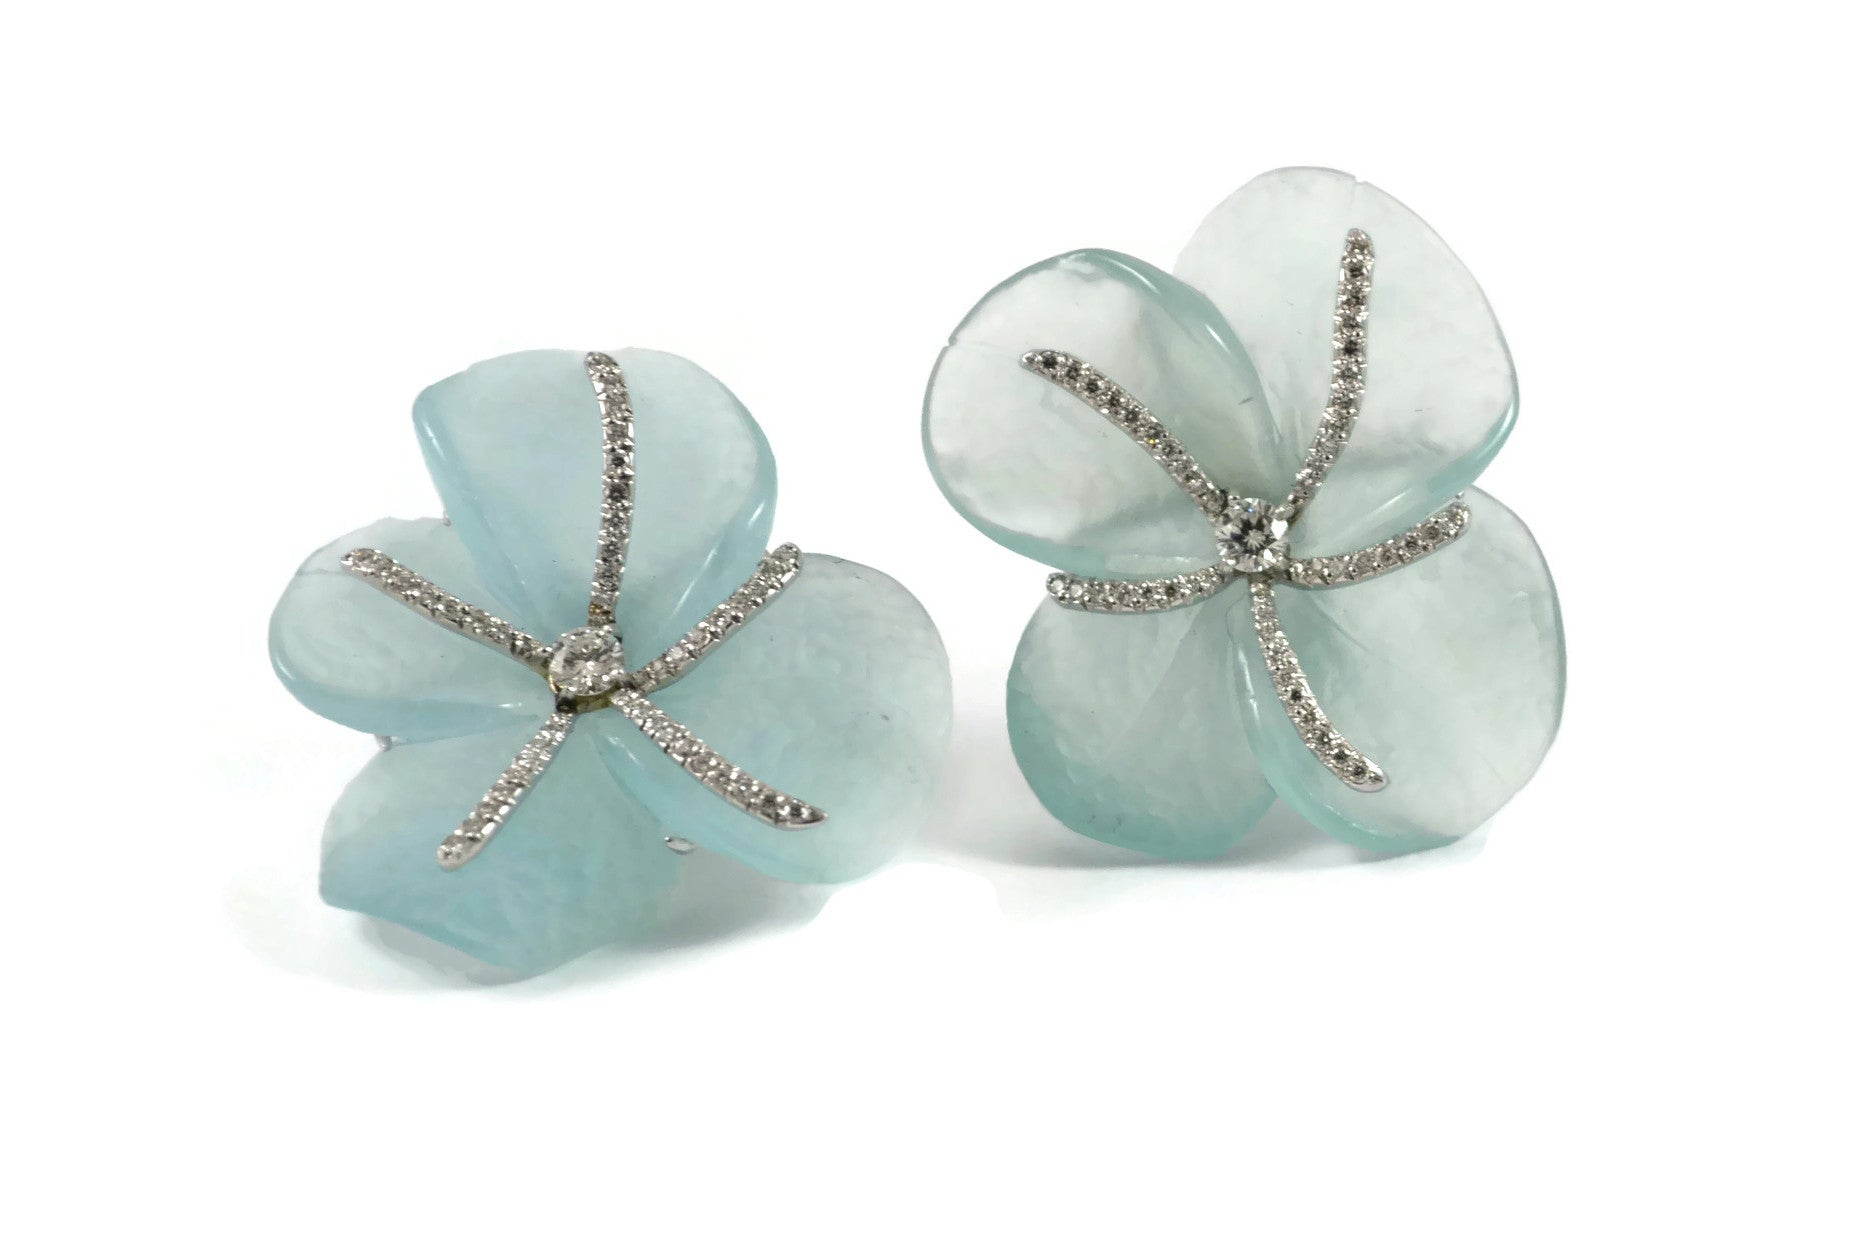 Eclat One of a Kind Aquamarine and Diamonds Earrings, 18k White Gold.